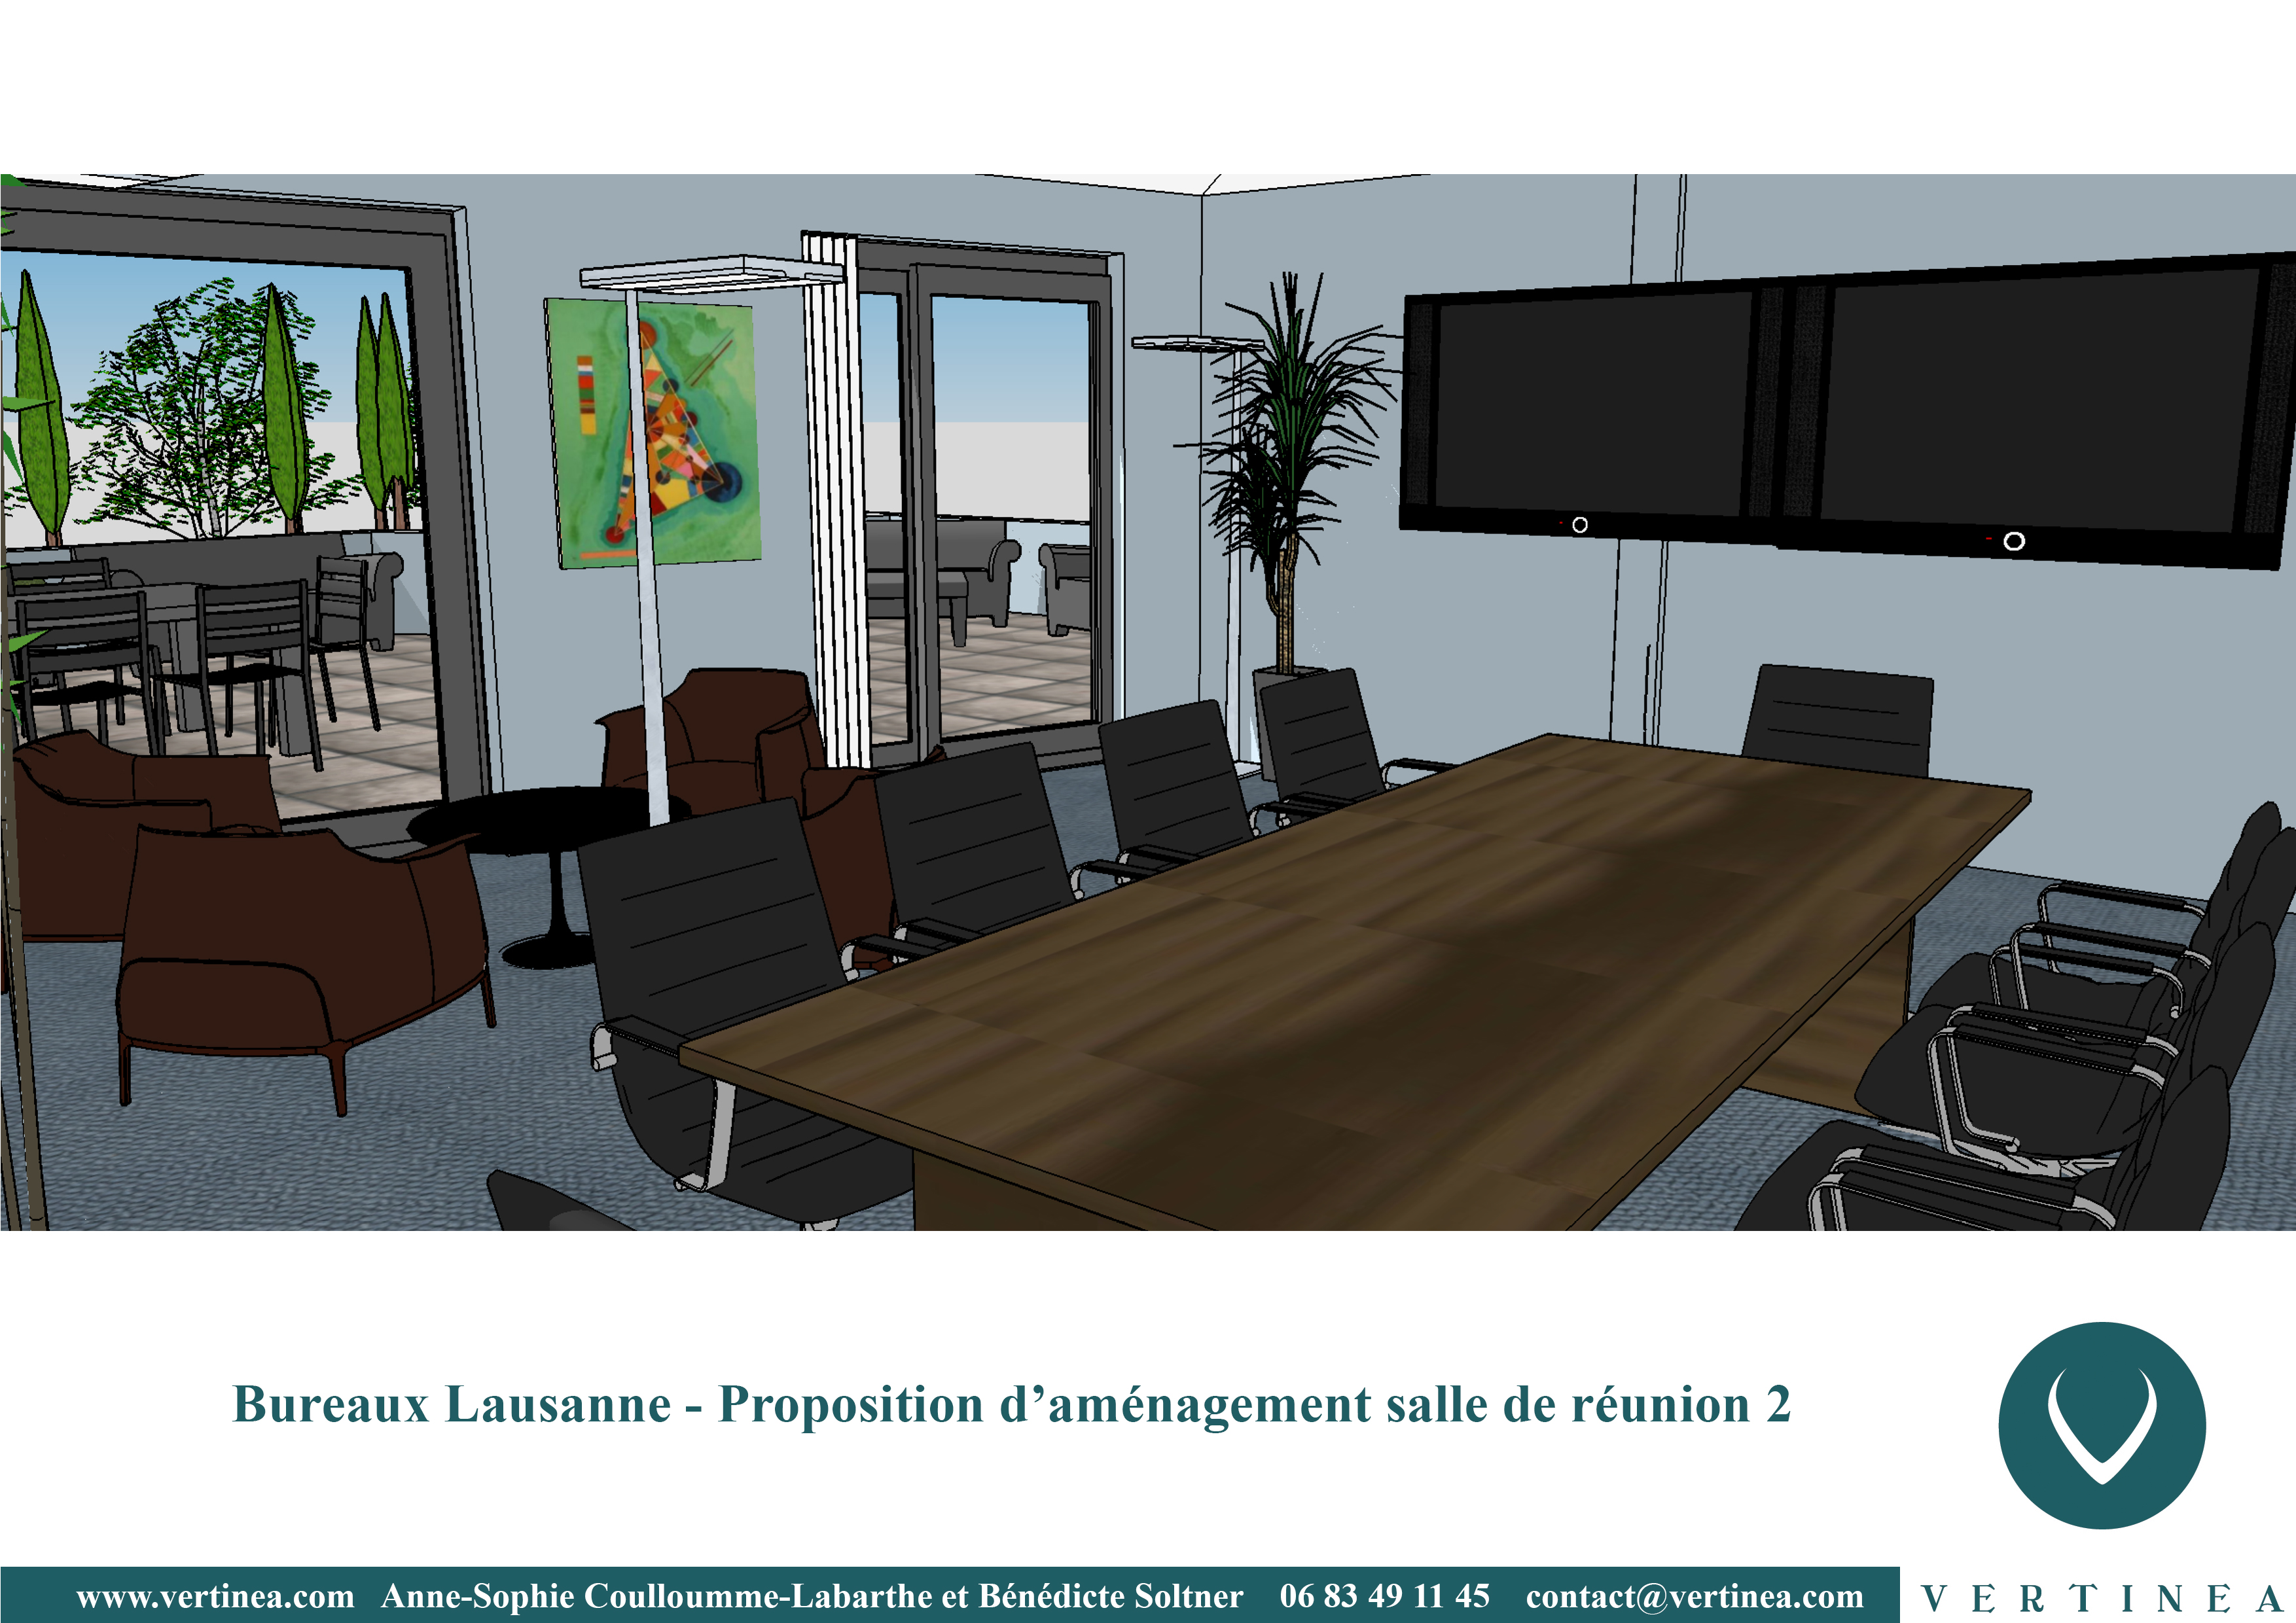 Am nagement et d coration int rieure de bureaux lausanne for Amenagement decoration interieur